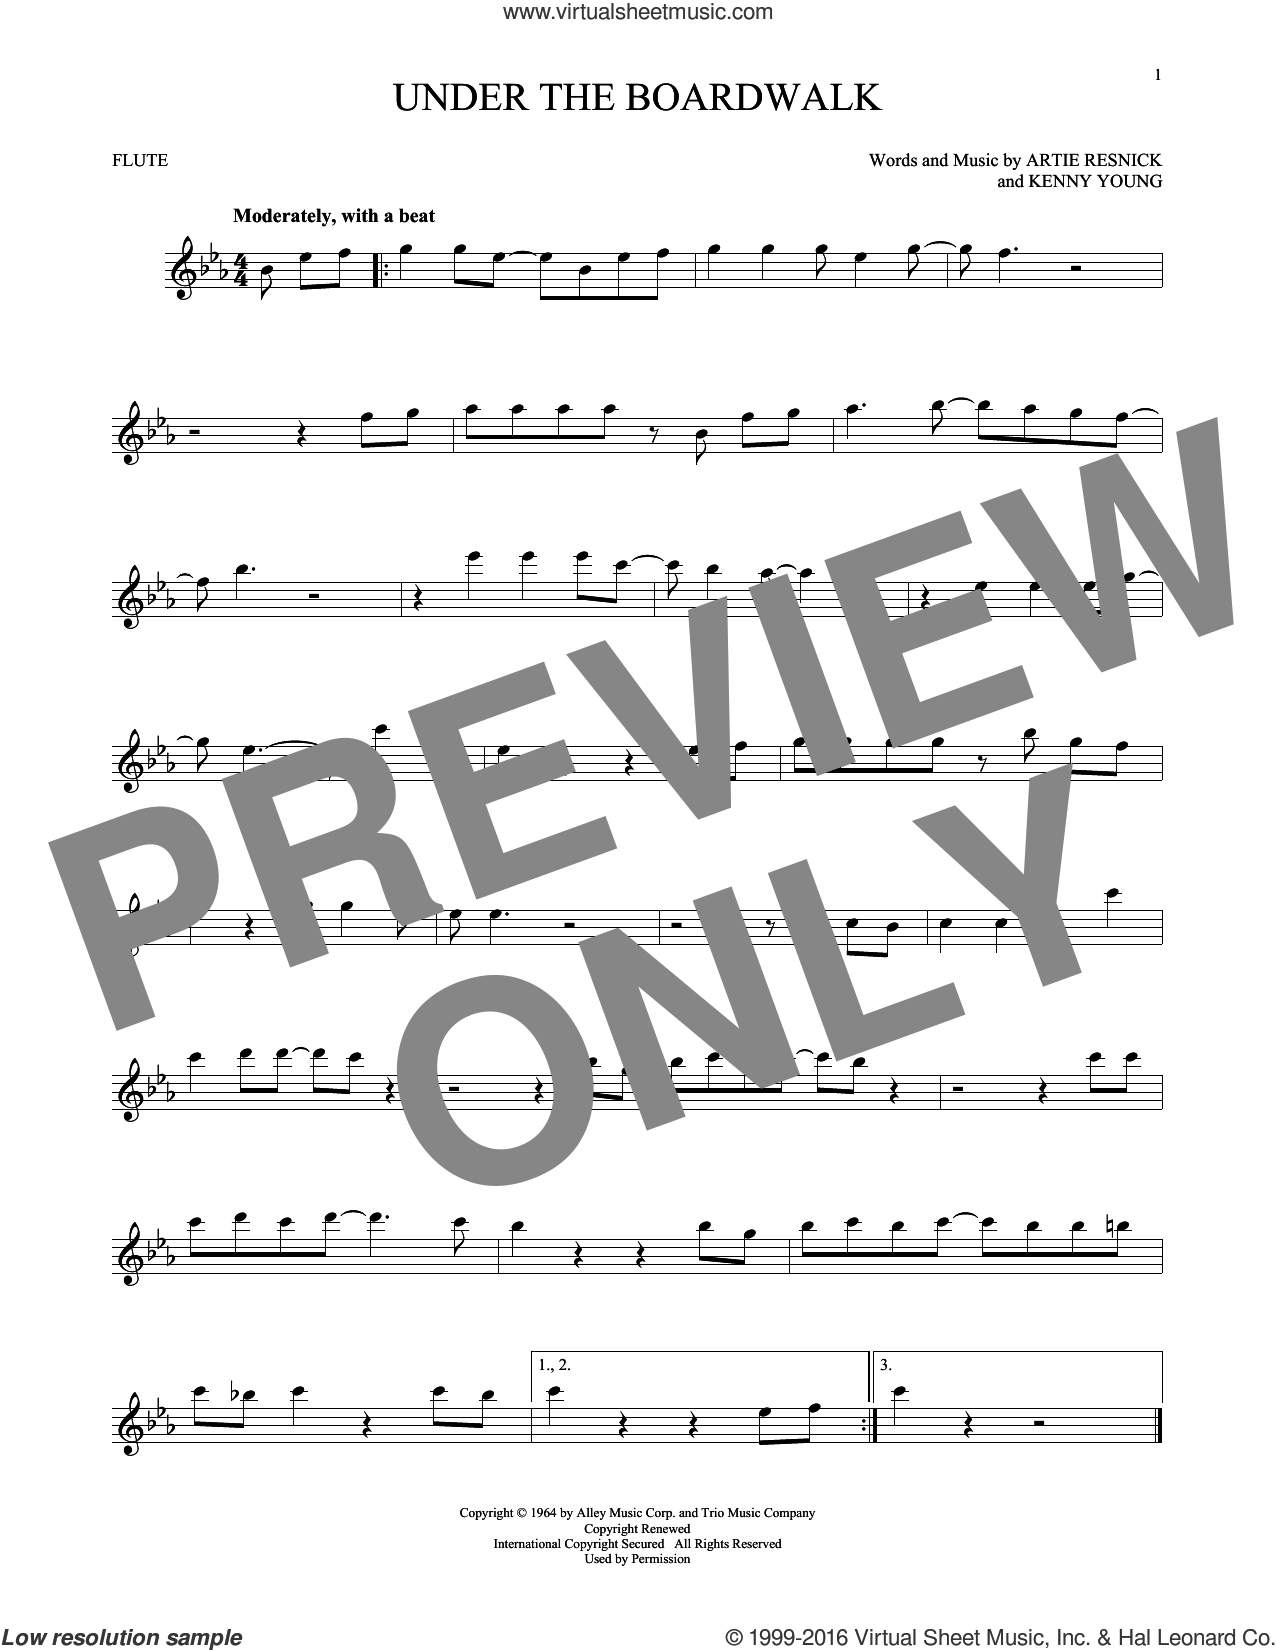 Under The Boardwalk sheet music for flute solo by The Drifters, intermediate skill level